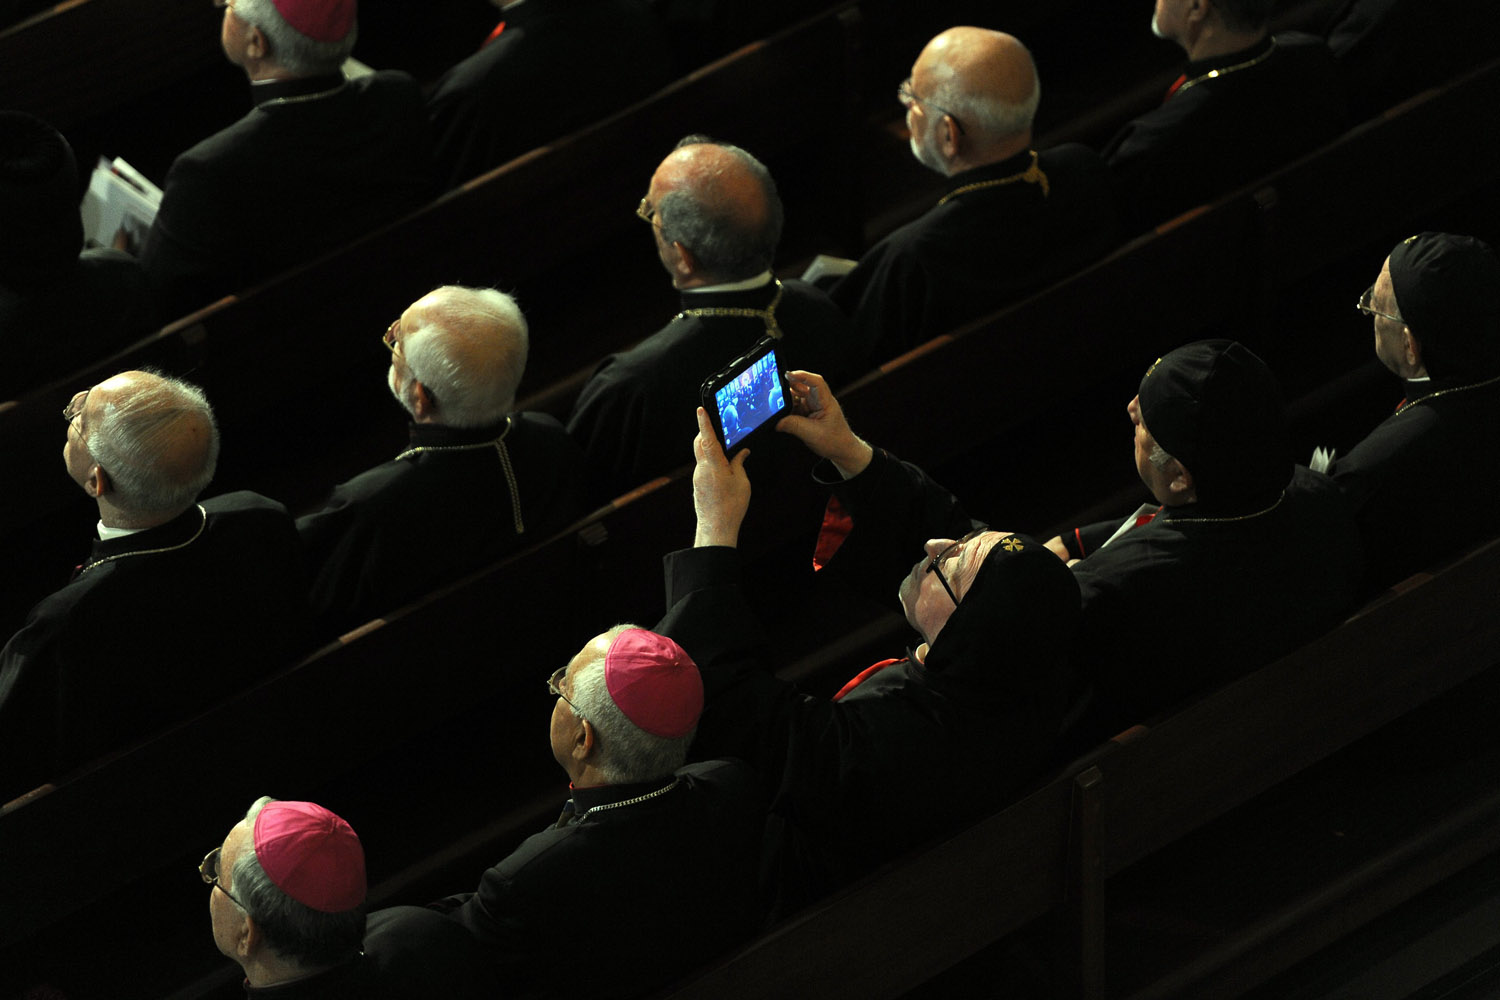 Sept. 14, 2012. A Bishop takes pictures as Pope Benedict XVI (not pictured) leads a ceremony at the Saint Paul cathedral in Harissa village, east Beirut, Lebanon.